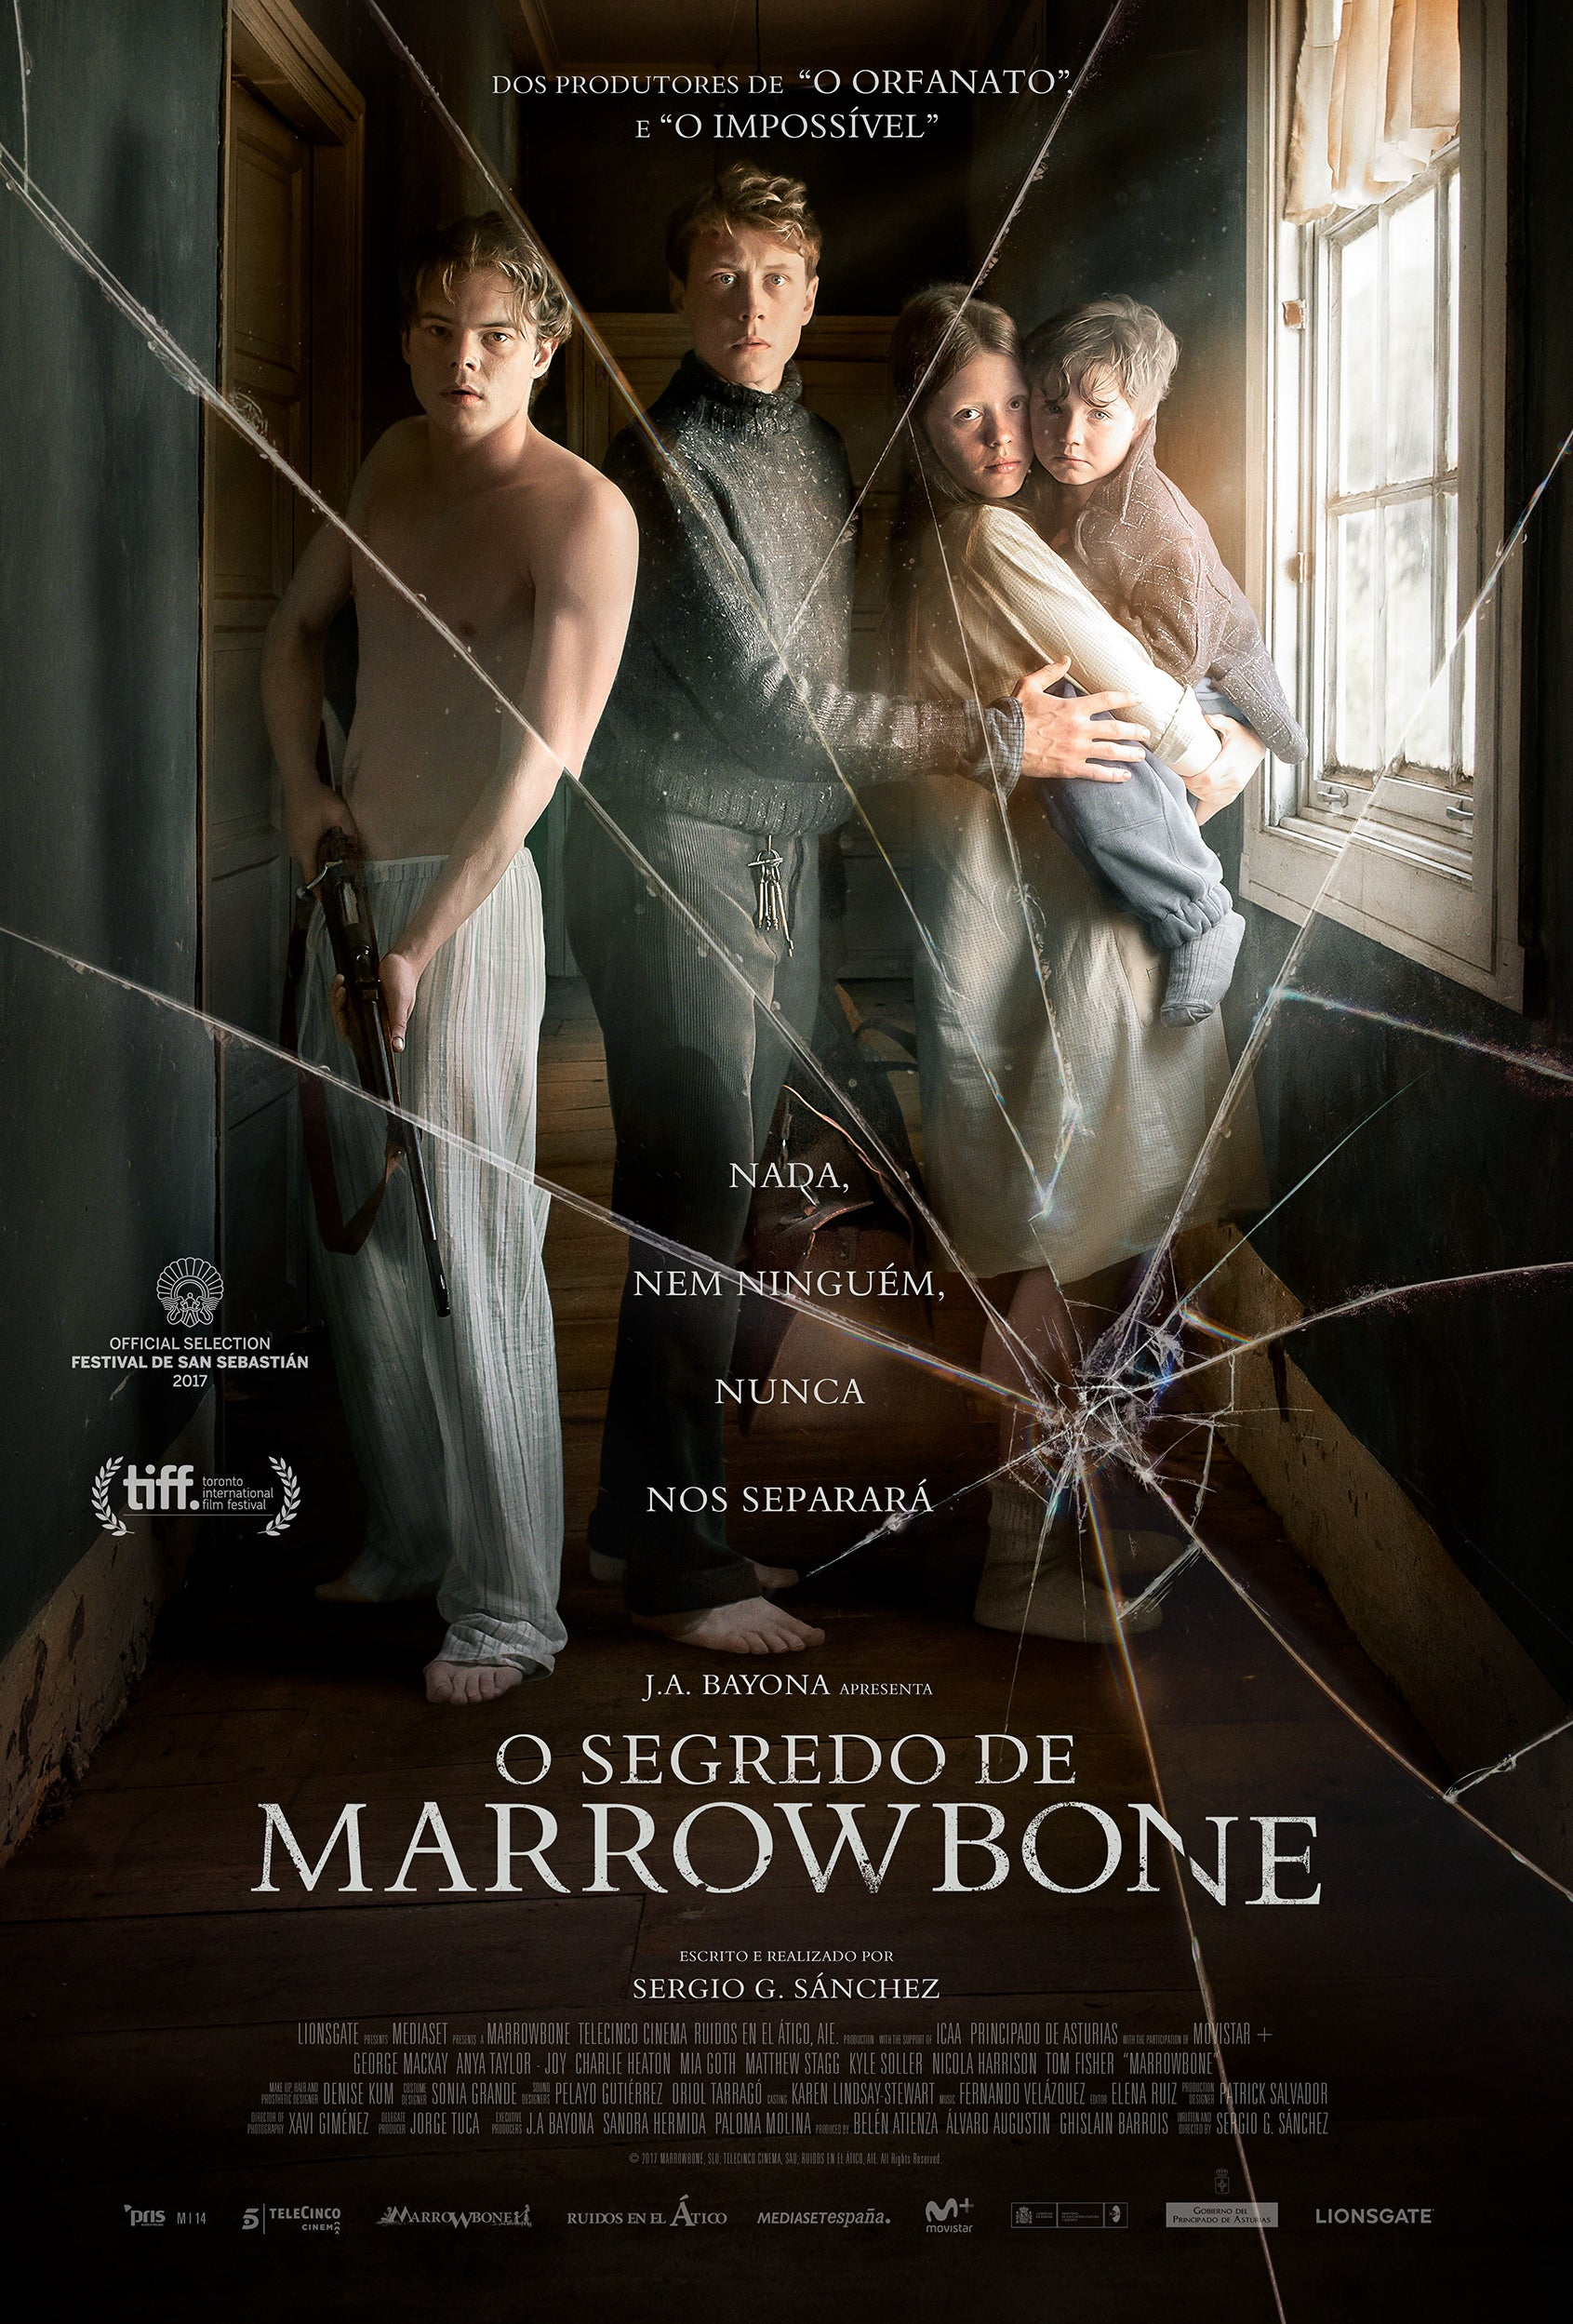 Antestreia: O Segredo de Marrowbone